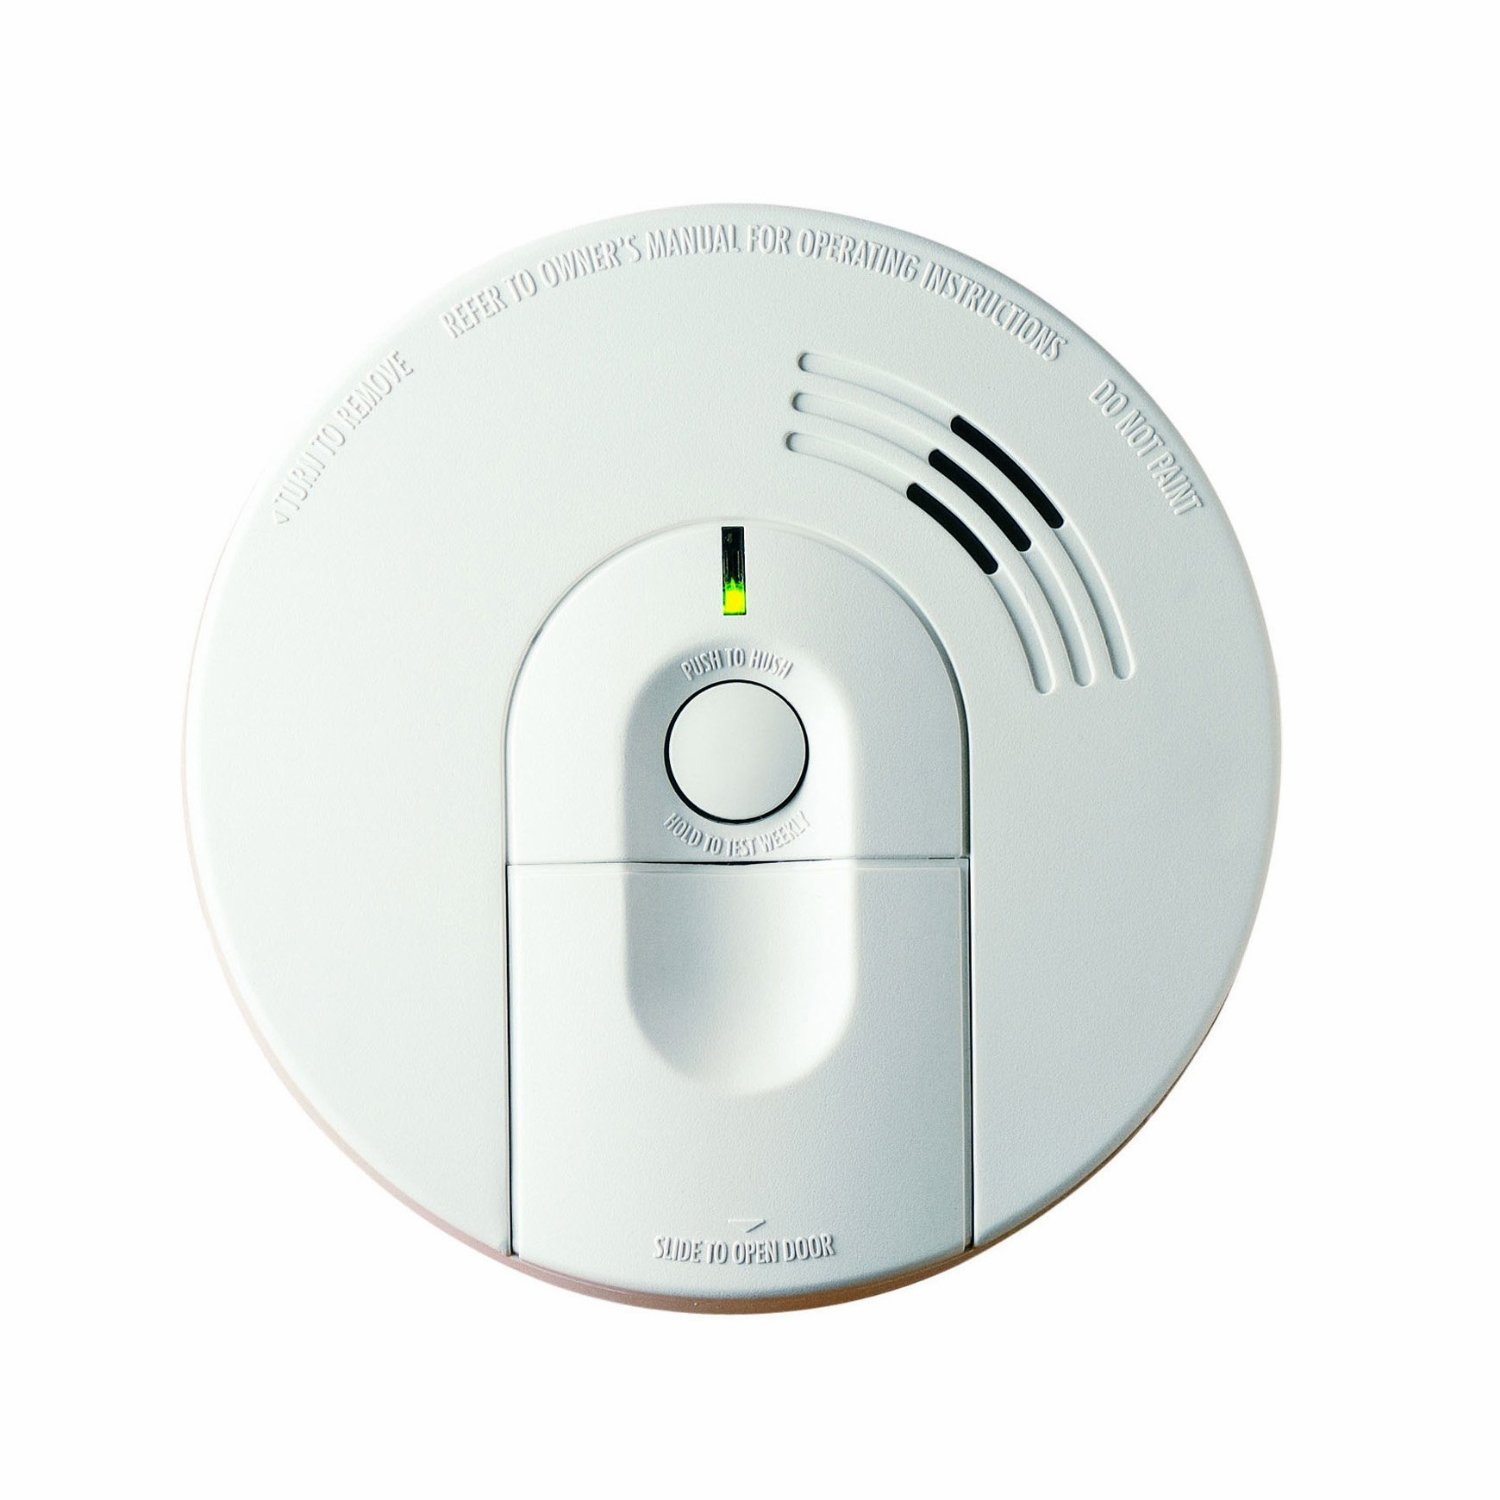 Kidde i4618 Firex Hardwire Ionization Smoke Detector with Battery Backup (4 Pack)